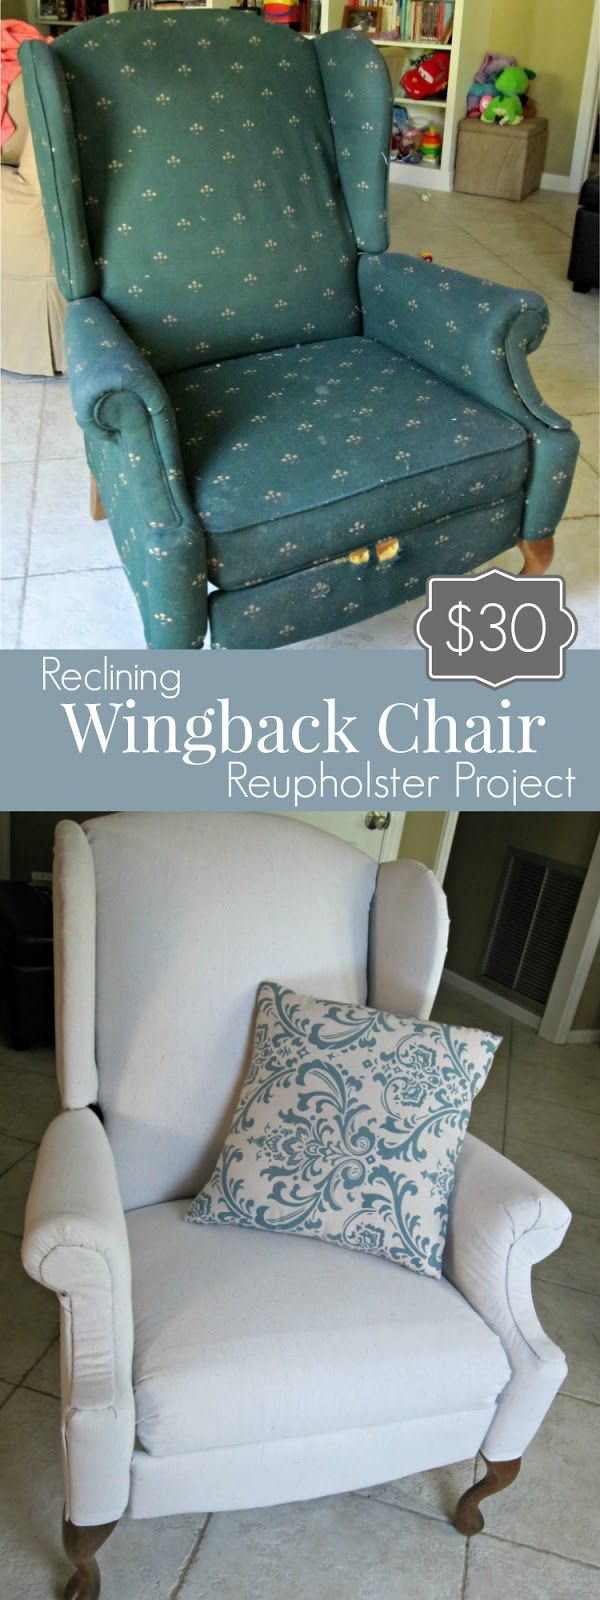 $30 Reclining Wingback Reupholstery Project & Best 25+ Wingback chair covers ideas on Pinterest | Wingback ... islam-shia.org